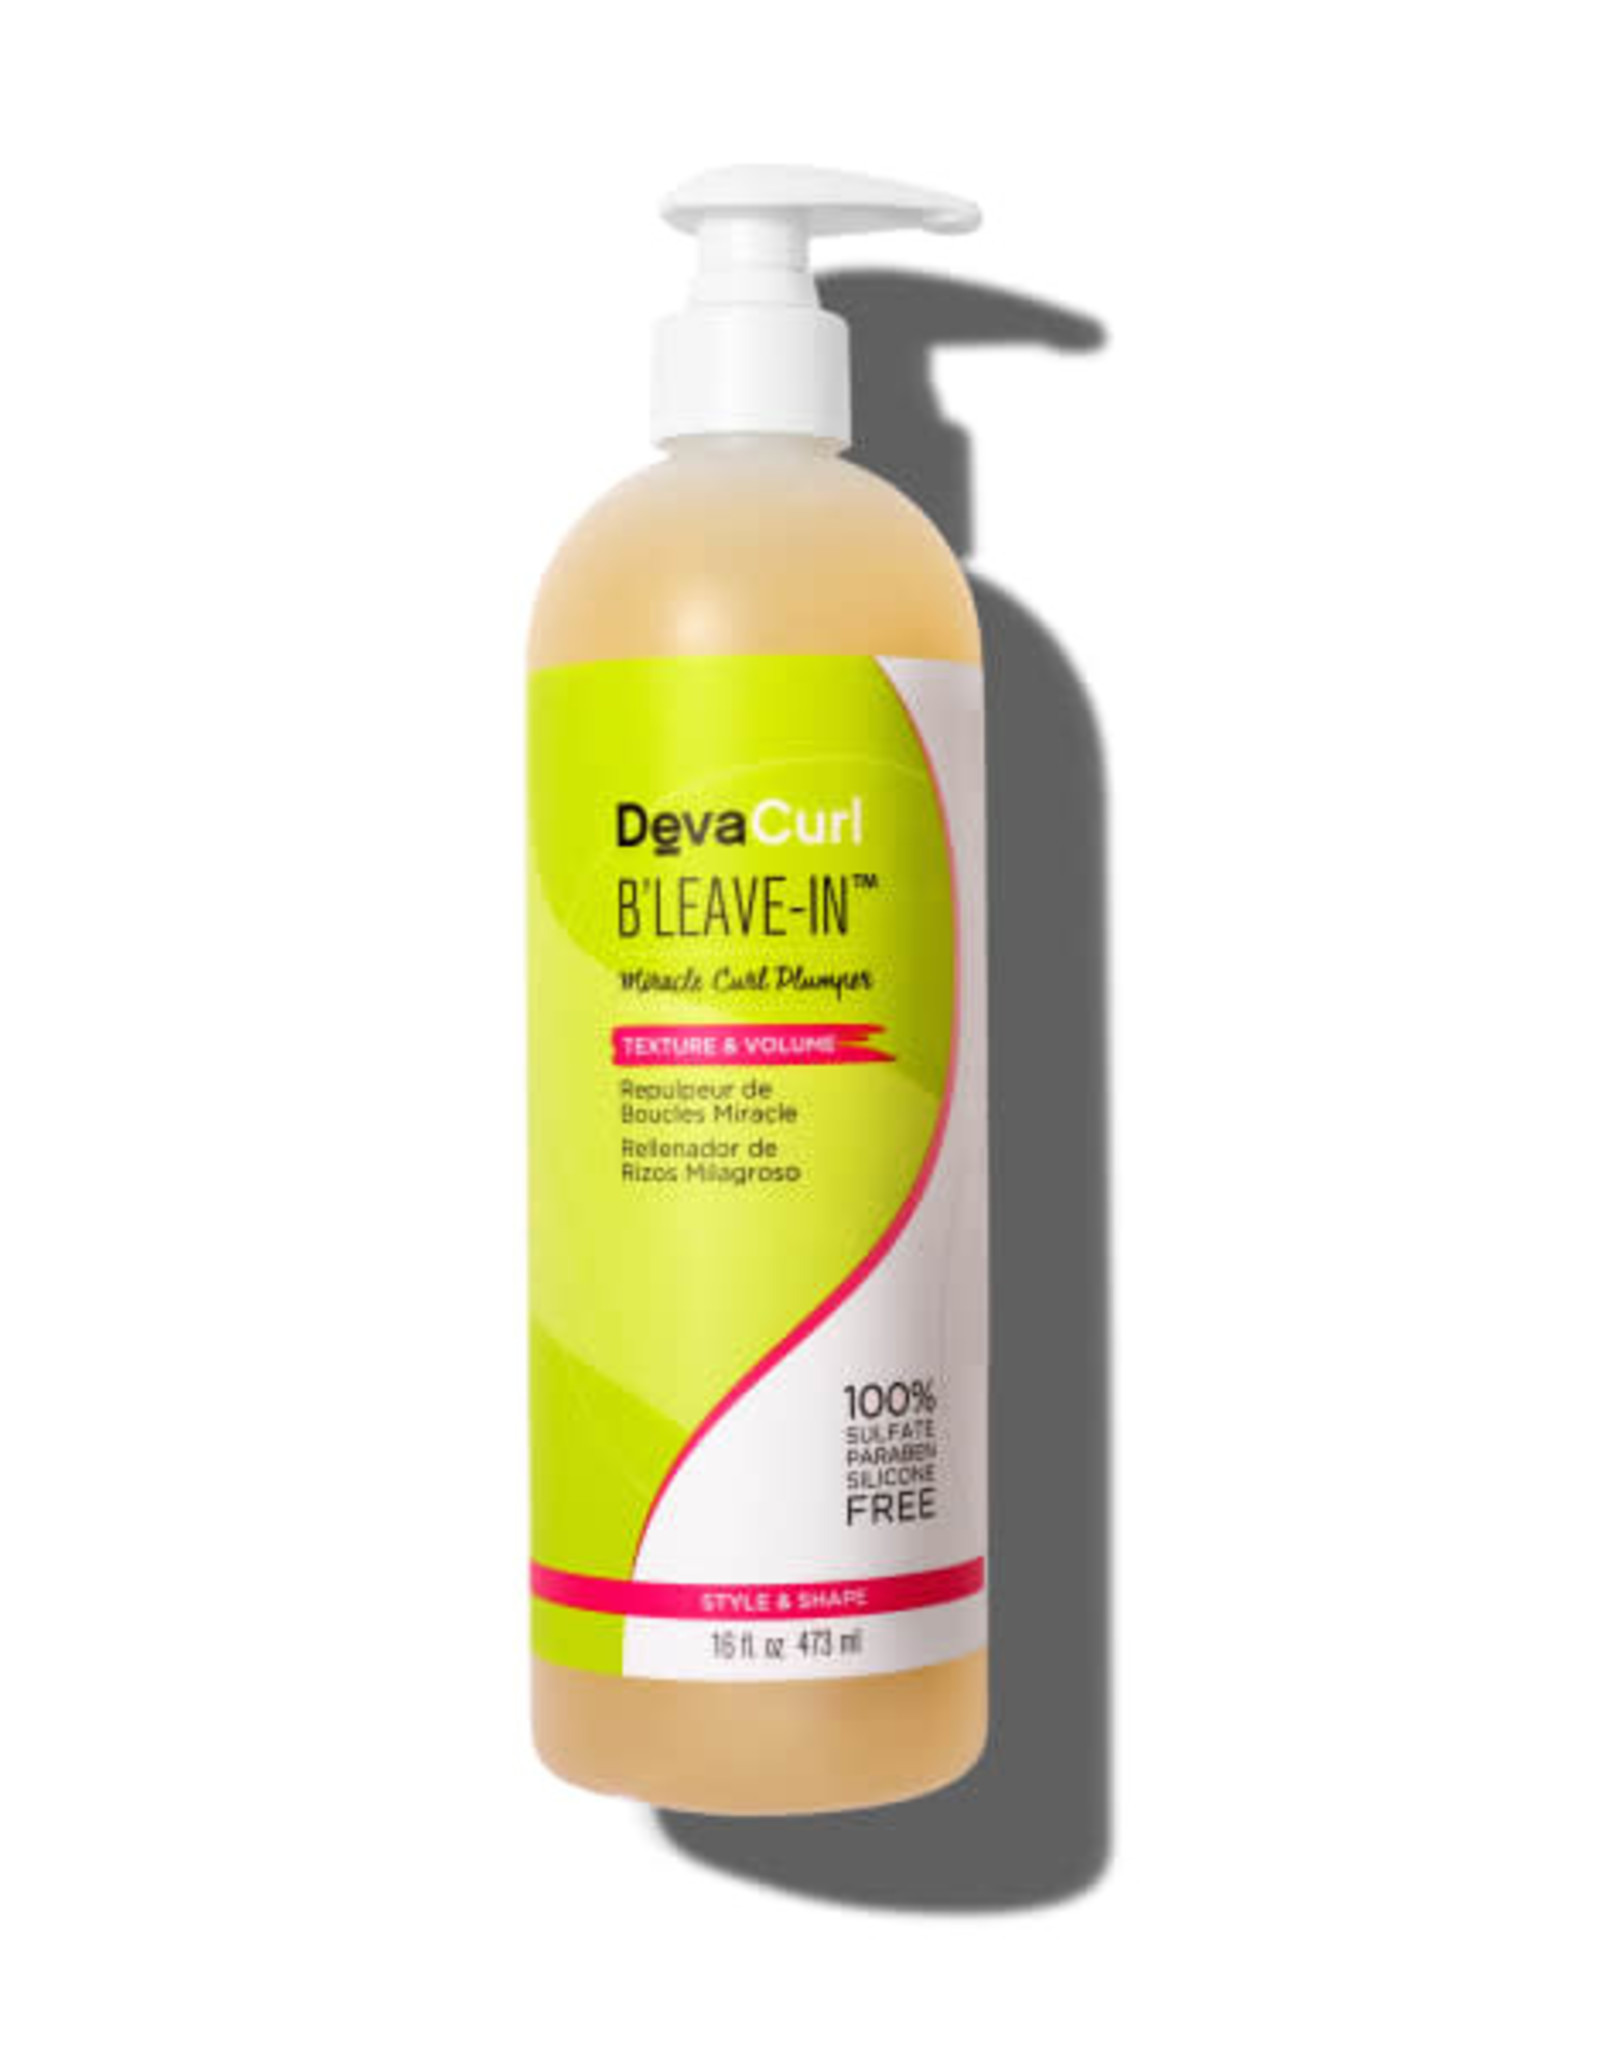 DevaCurl B'Leave In